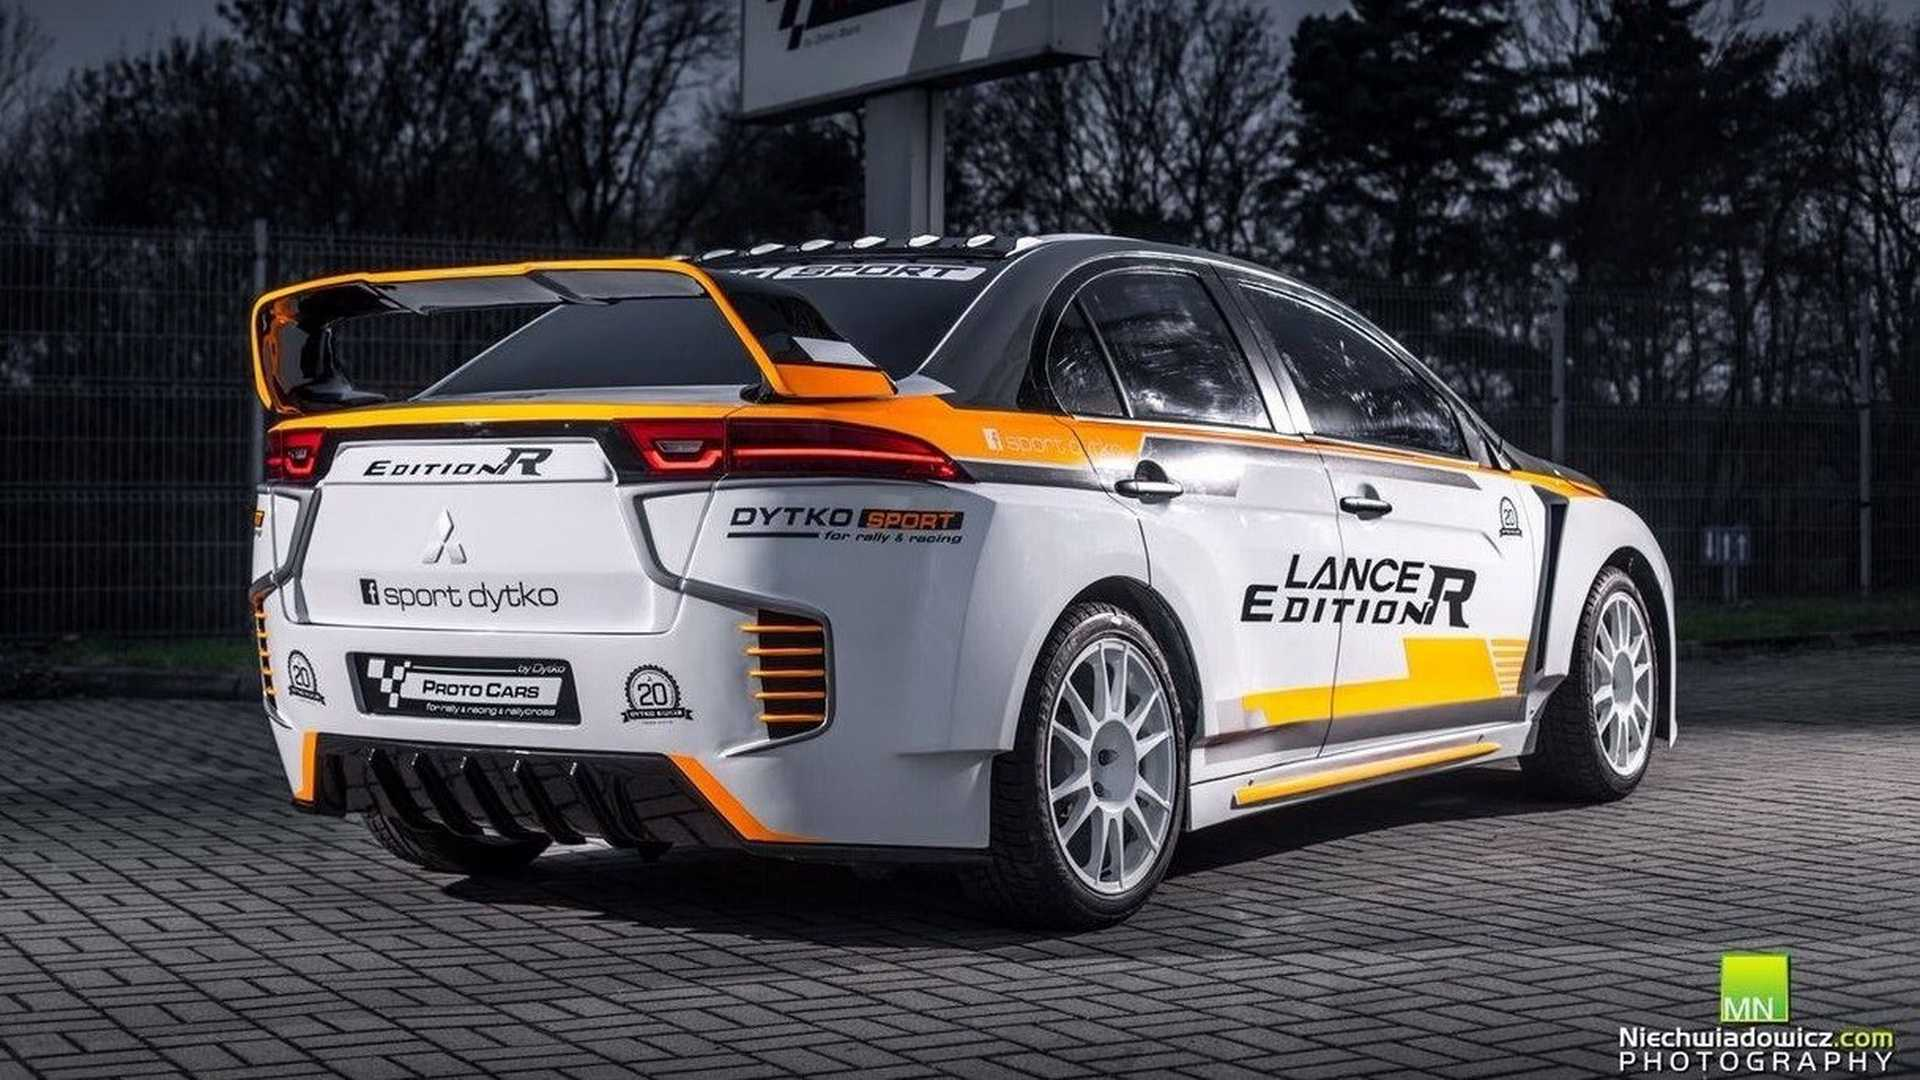 Lancer Edition R Is The New Evo Mitsubishi Won T Build